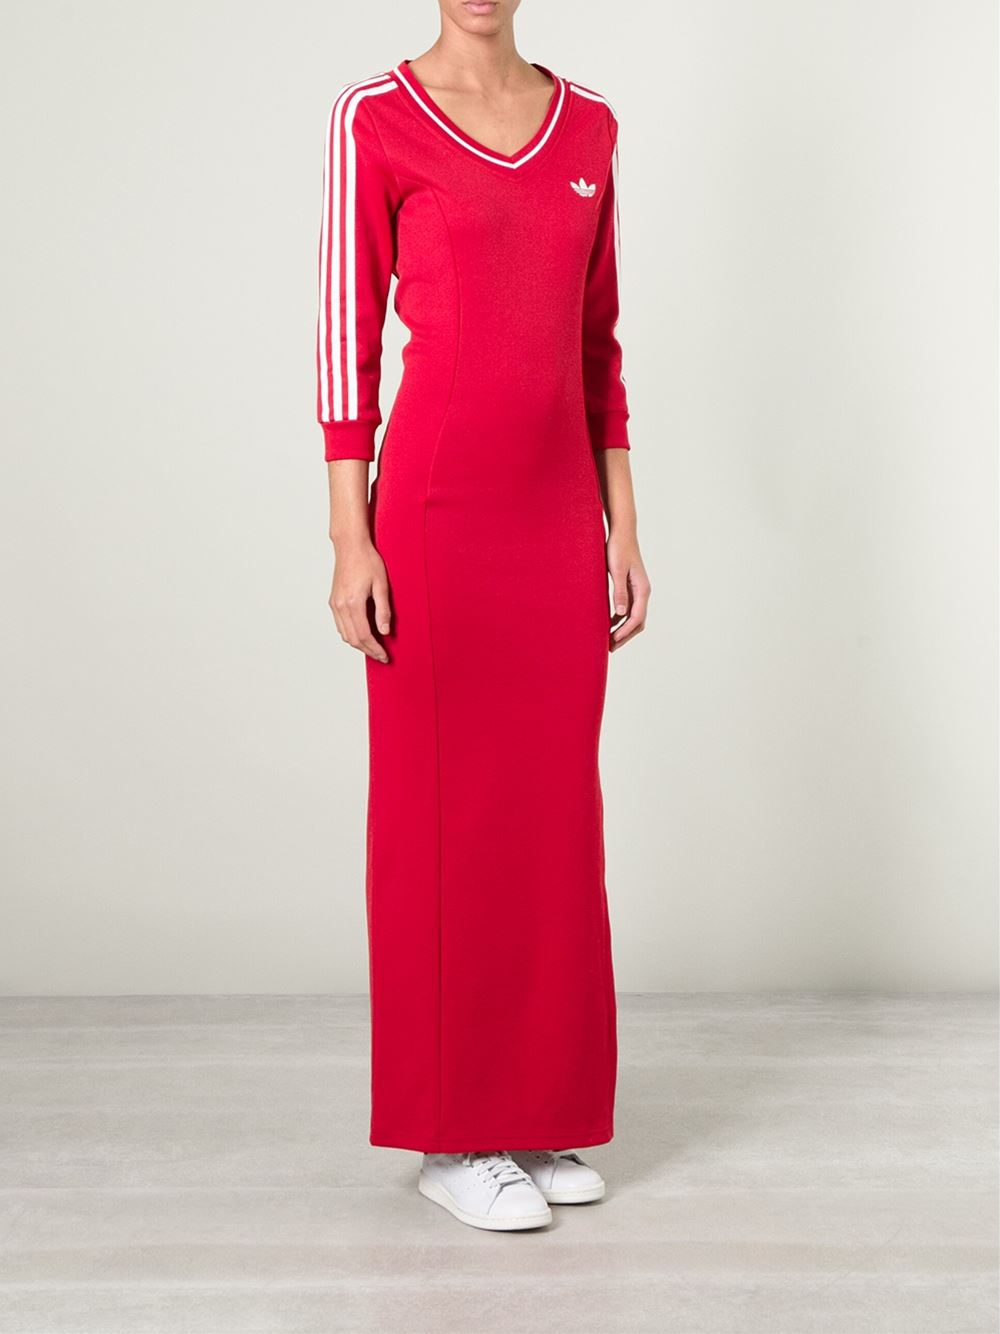 cbe4d07fcfd adidas Long Line Jersey Dress in Red - Lyst